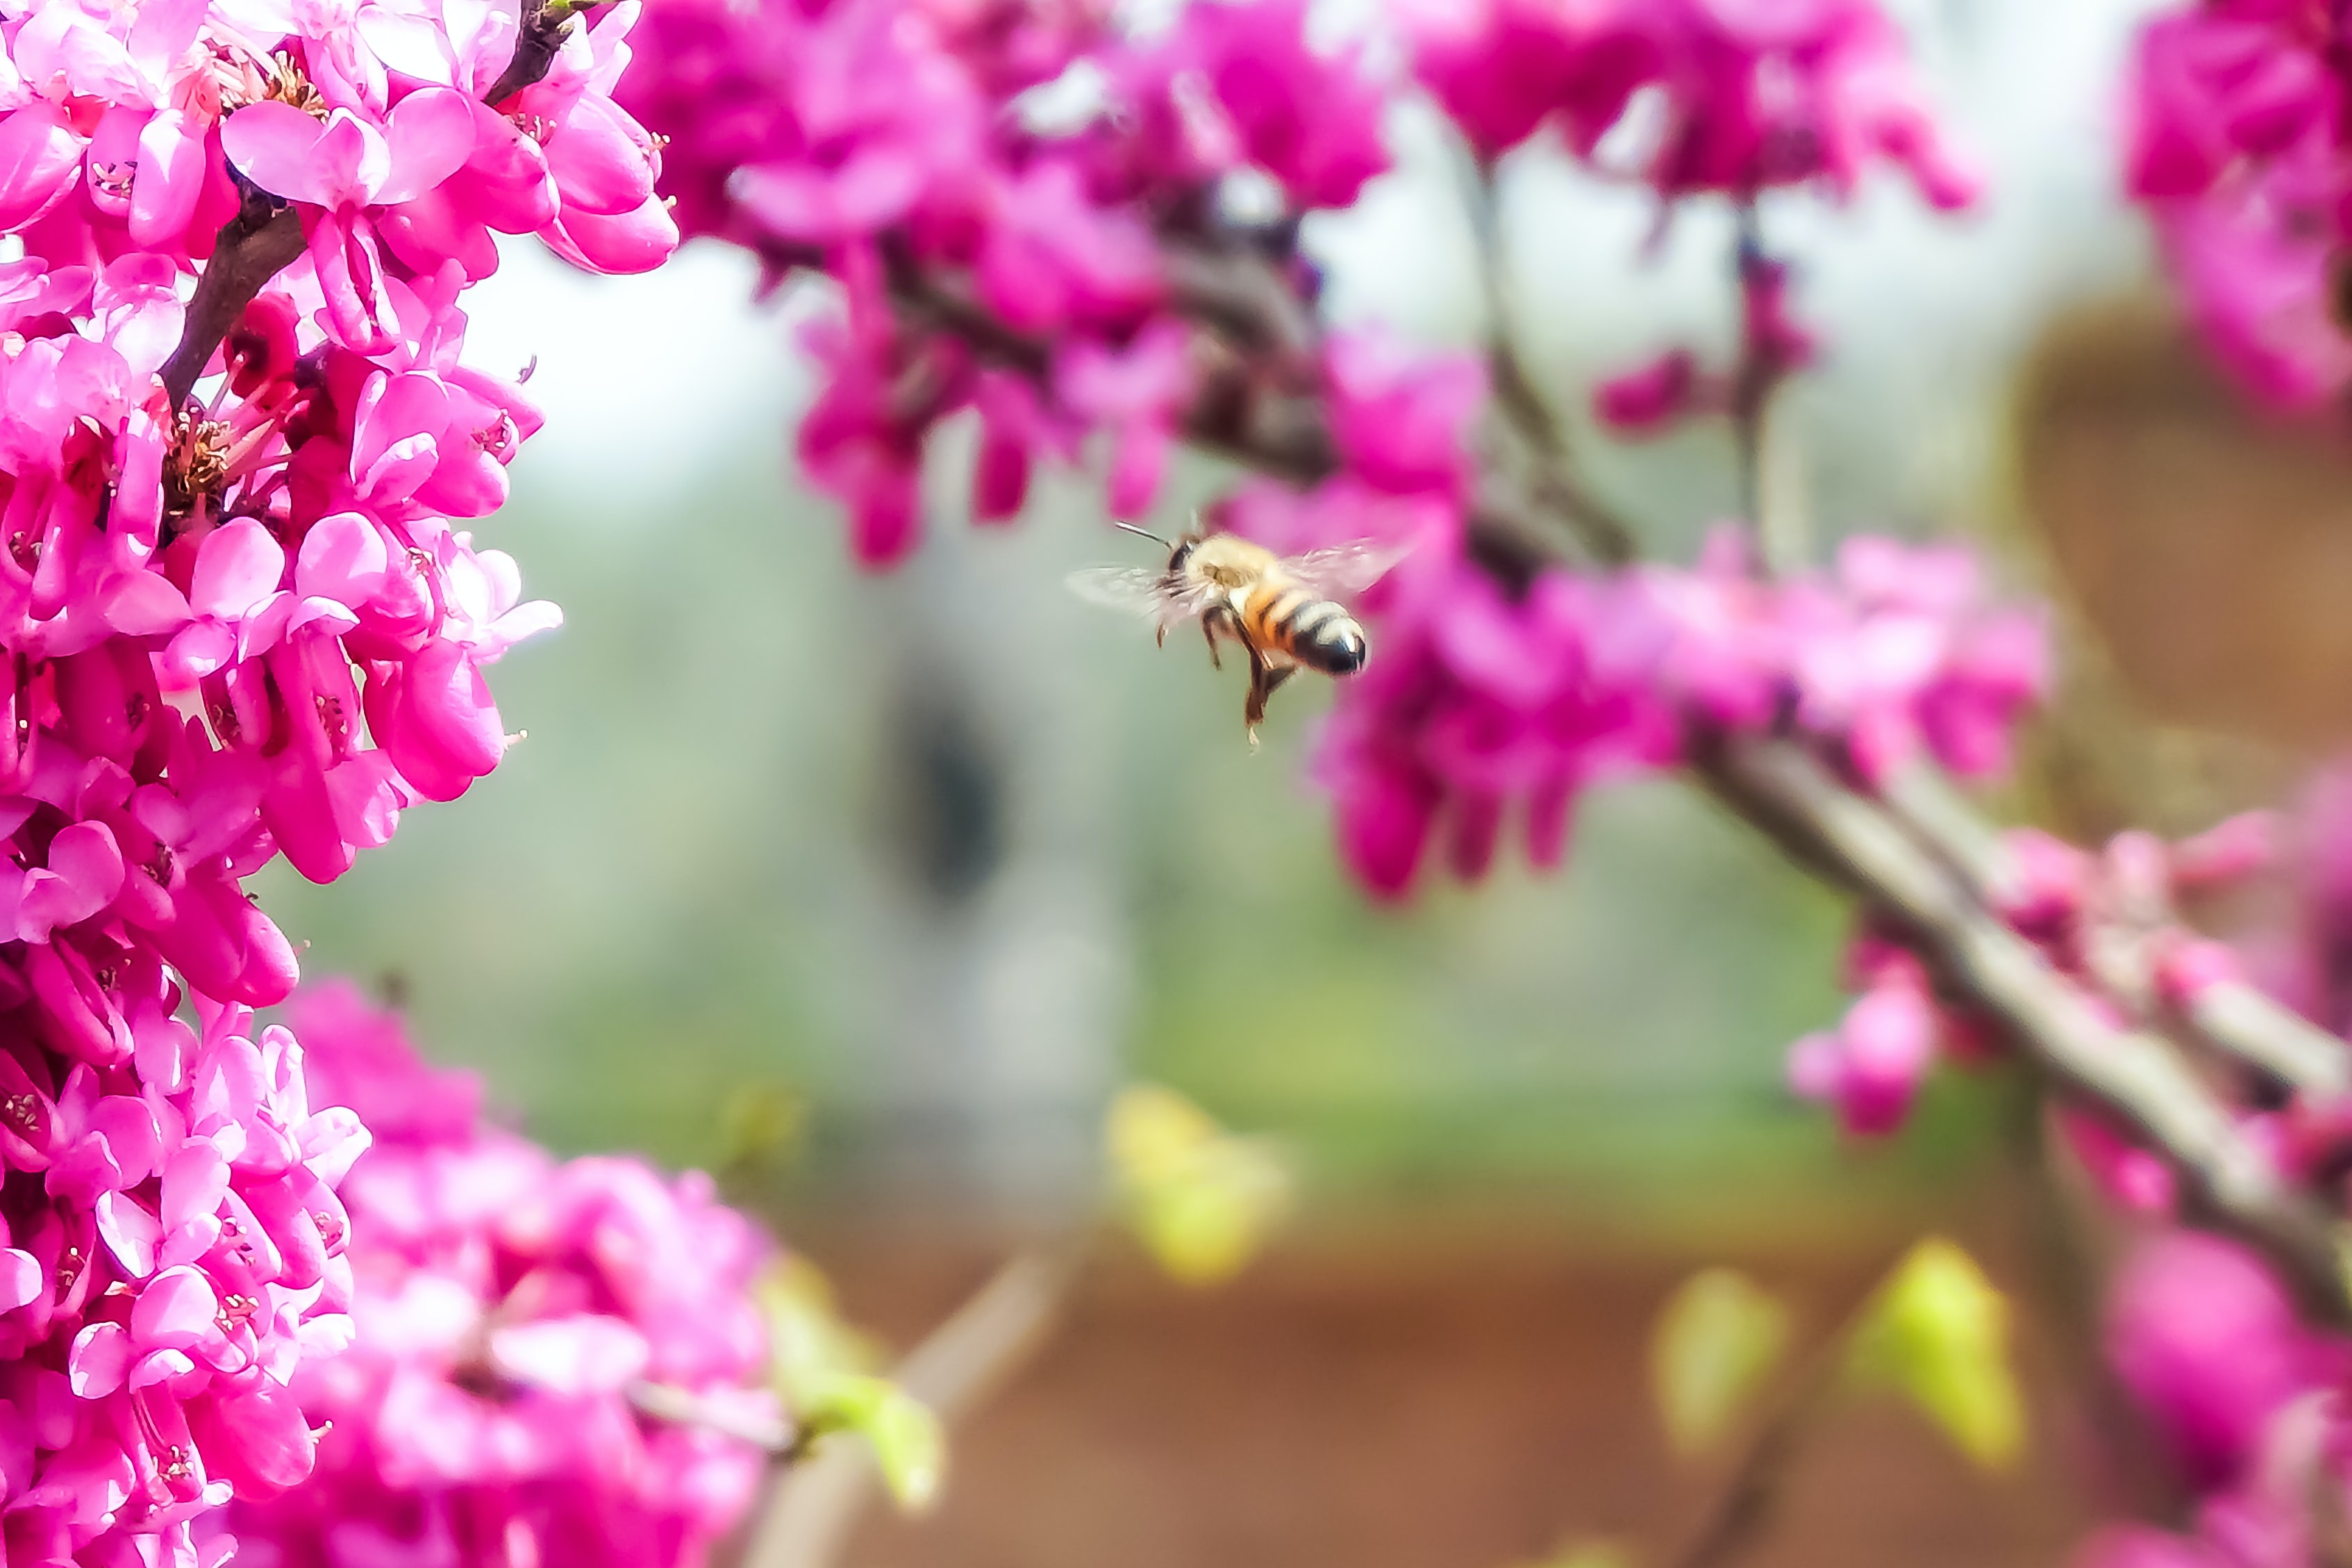 tilt shift lens photography of bee near pink flowers during daytime